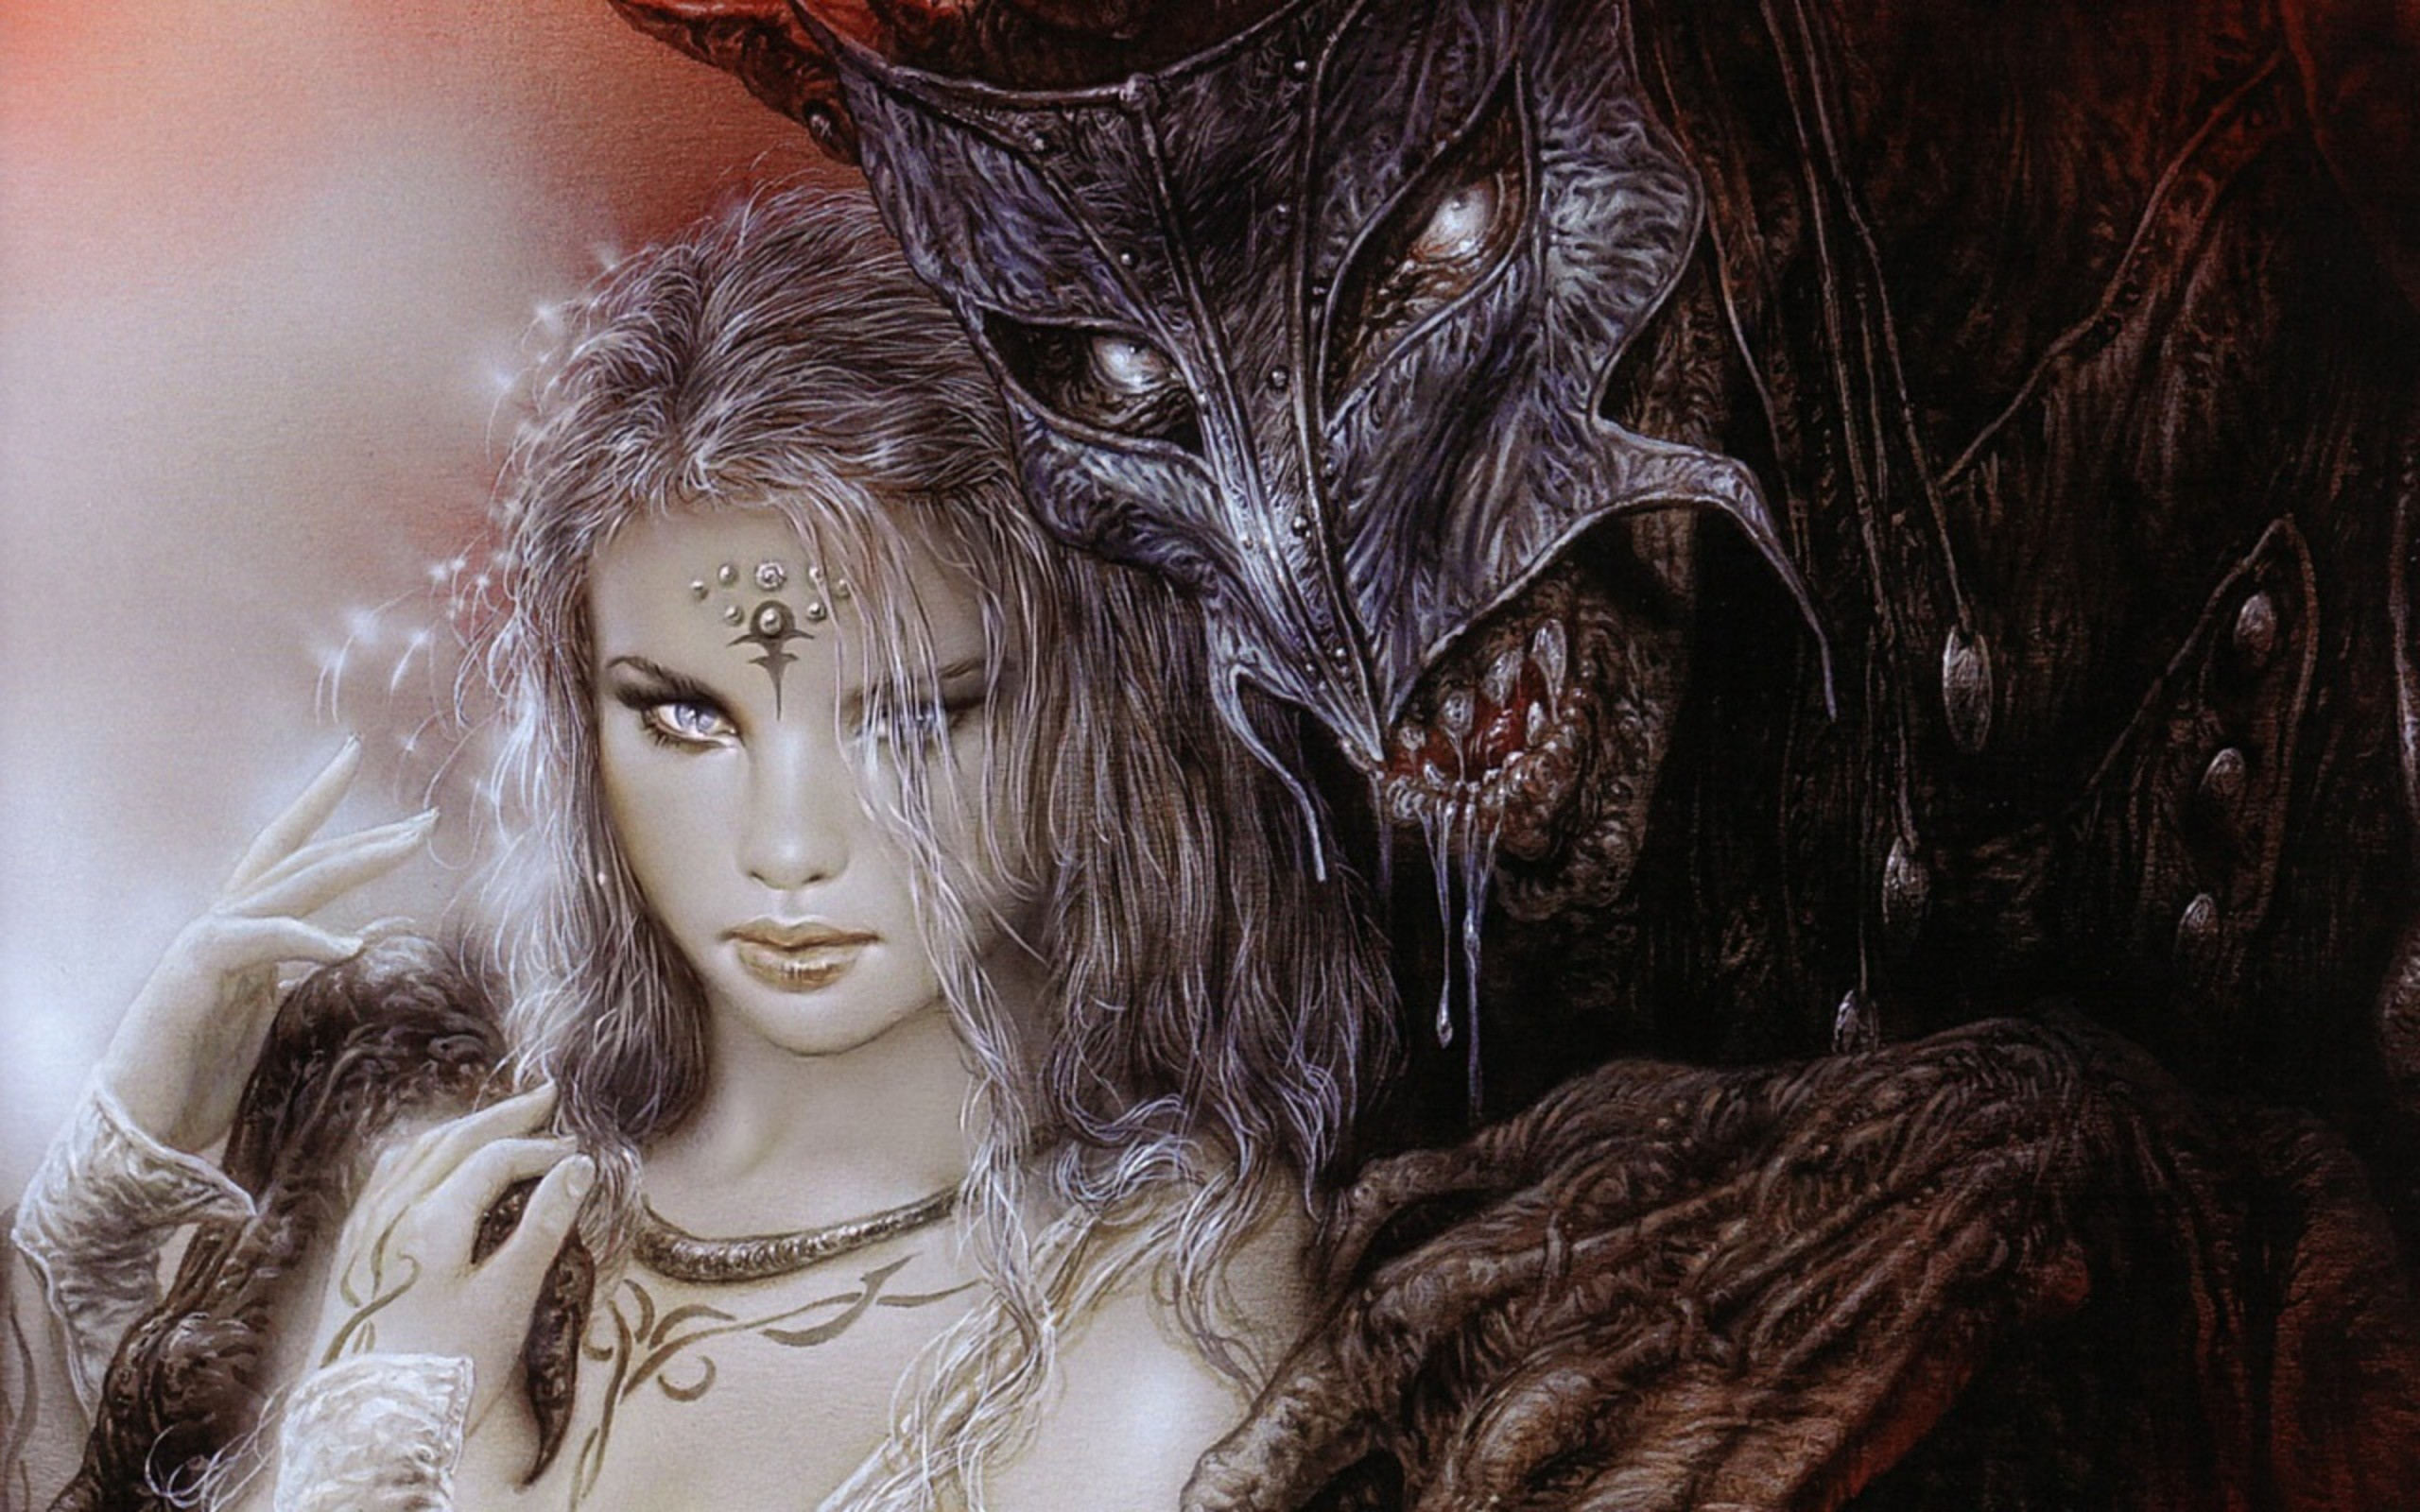 2560x1600 Luis Royo images Lady and Demon HD wallpaper and background photos